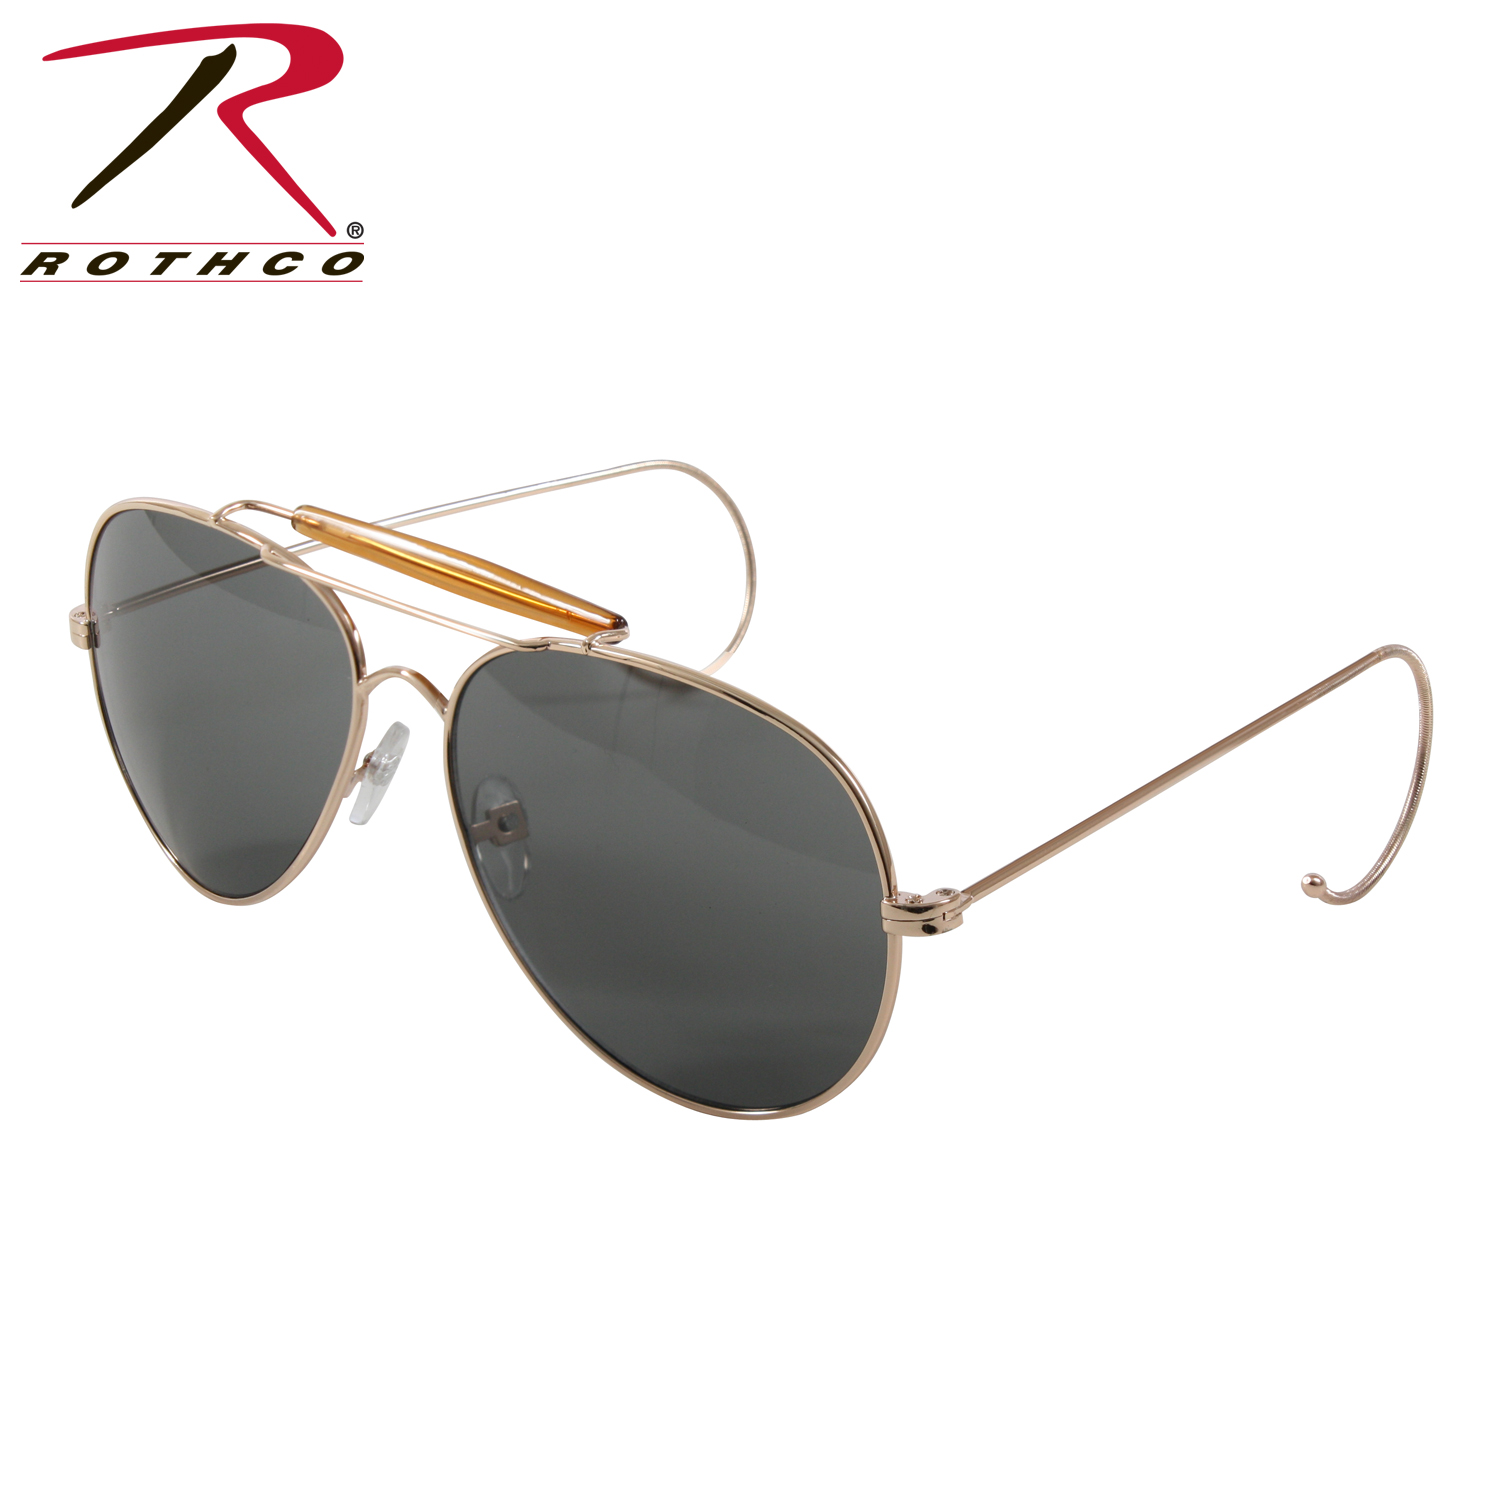 695877c06ba Rothco G.I. Type Air Force Pilots Sunglasses w  Case